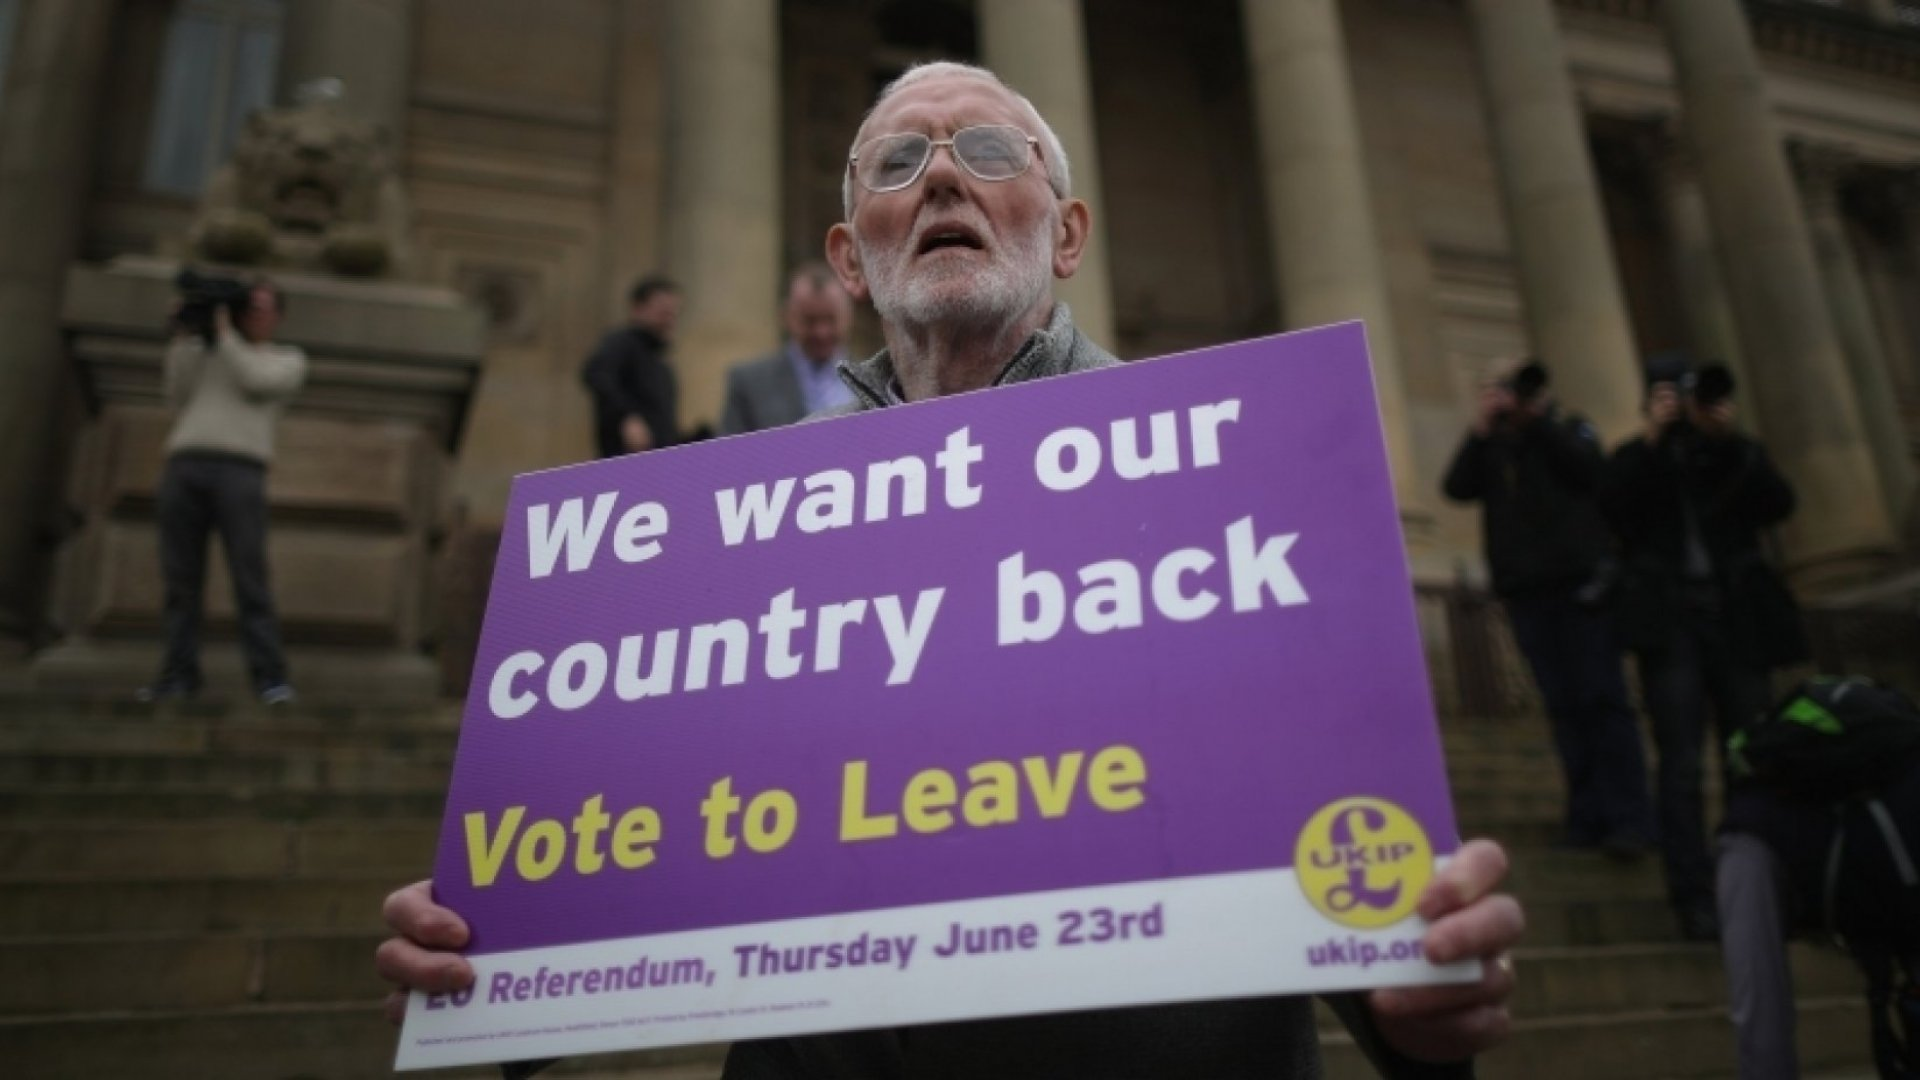 Are Business Leaders Partly at Fault for Brexit?